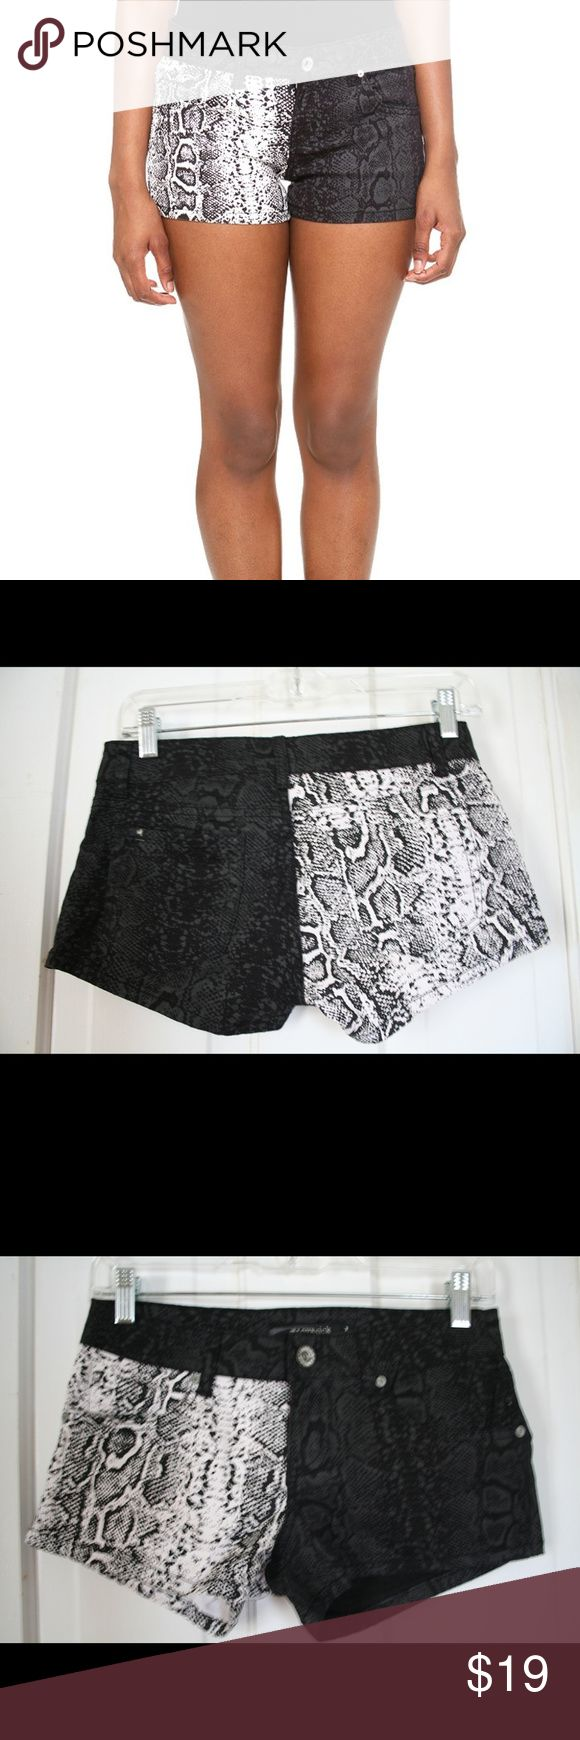 LOVEsick two-tone snake printed short shorts Gently pre-loved animal print contrast shorts, essentially like new. Edgy, sexy, cool. Sold at Hot Topic  #gothic #punk #alternative fashion Lovesick Shorts Jean Shorts